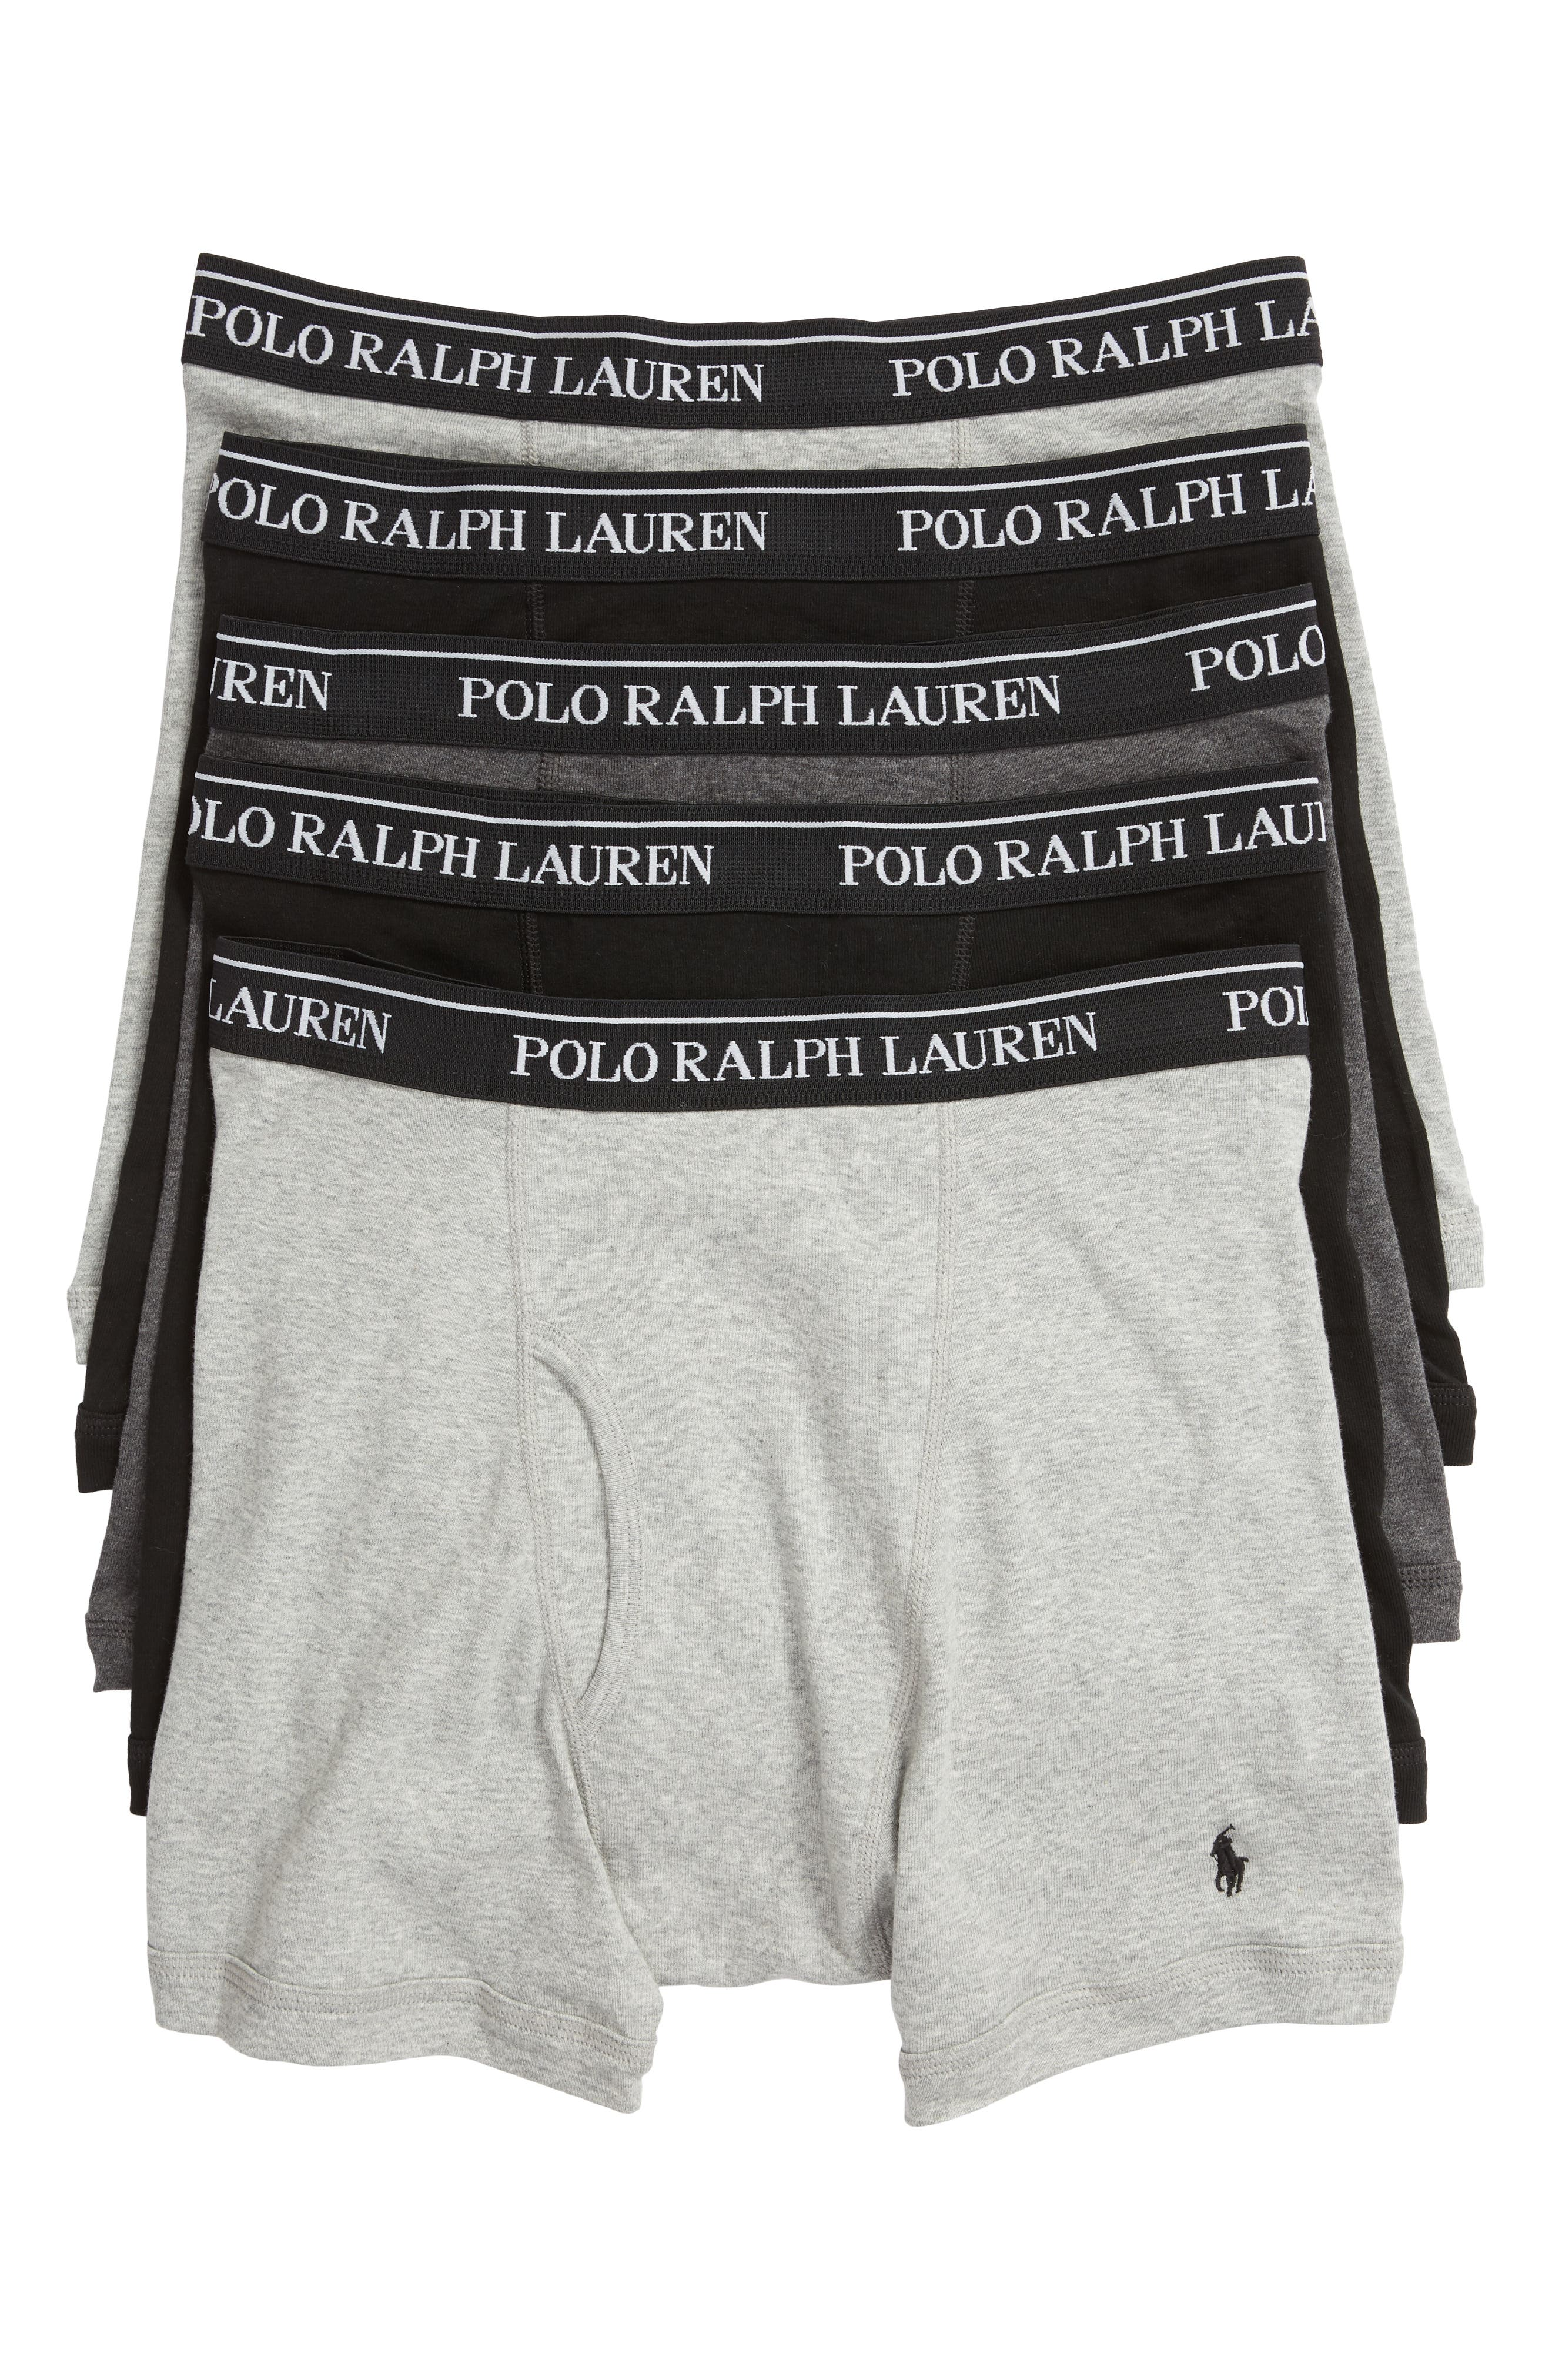 Nordstrom Polo Boxers Polo Ralph Lauren gY6vbf7y